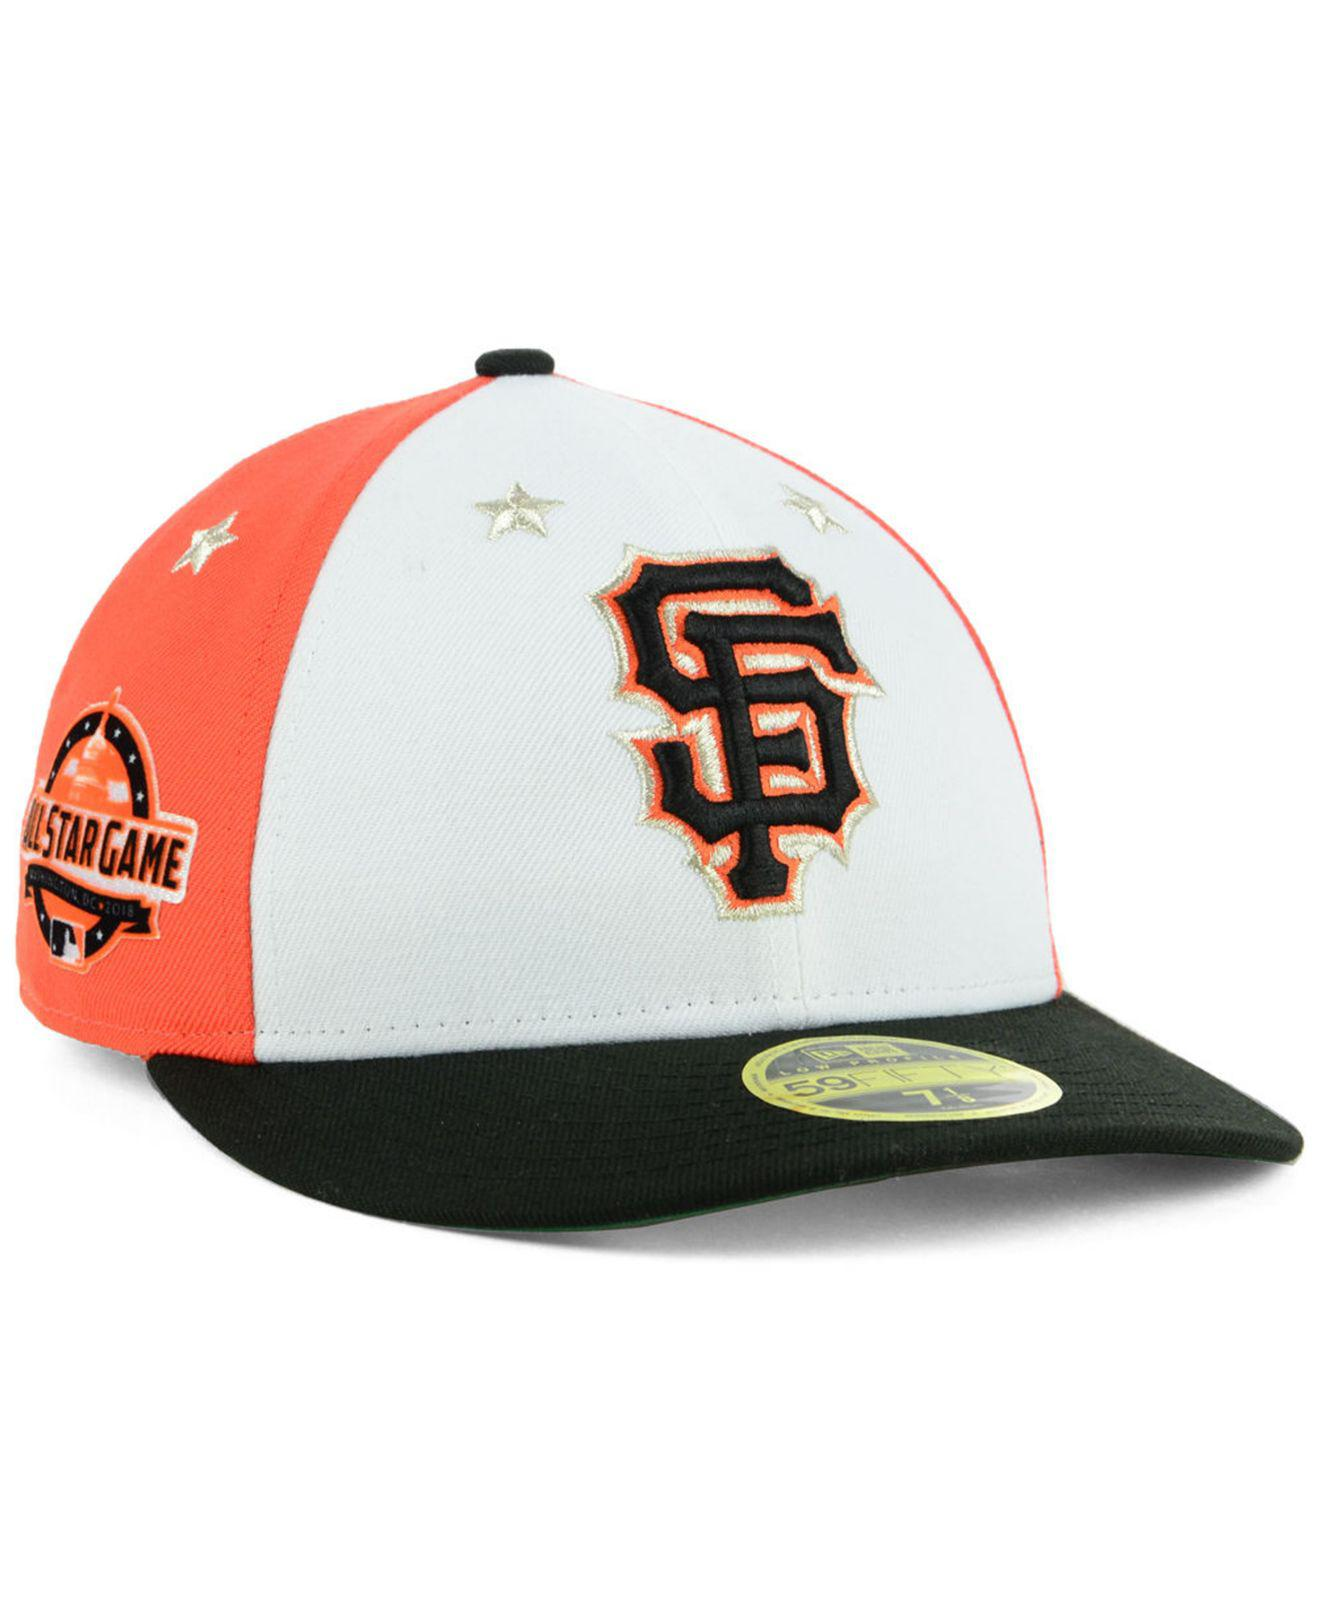 wholesale dealer 89d52 e3f5a KTZ. Men s San Francisco Giants All Star Game Patch Low Profile 59fifty  Fitted Cap 2018